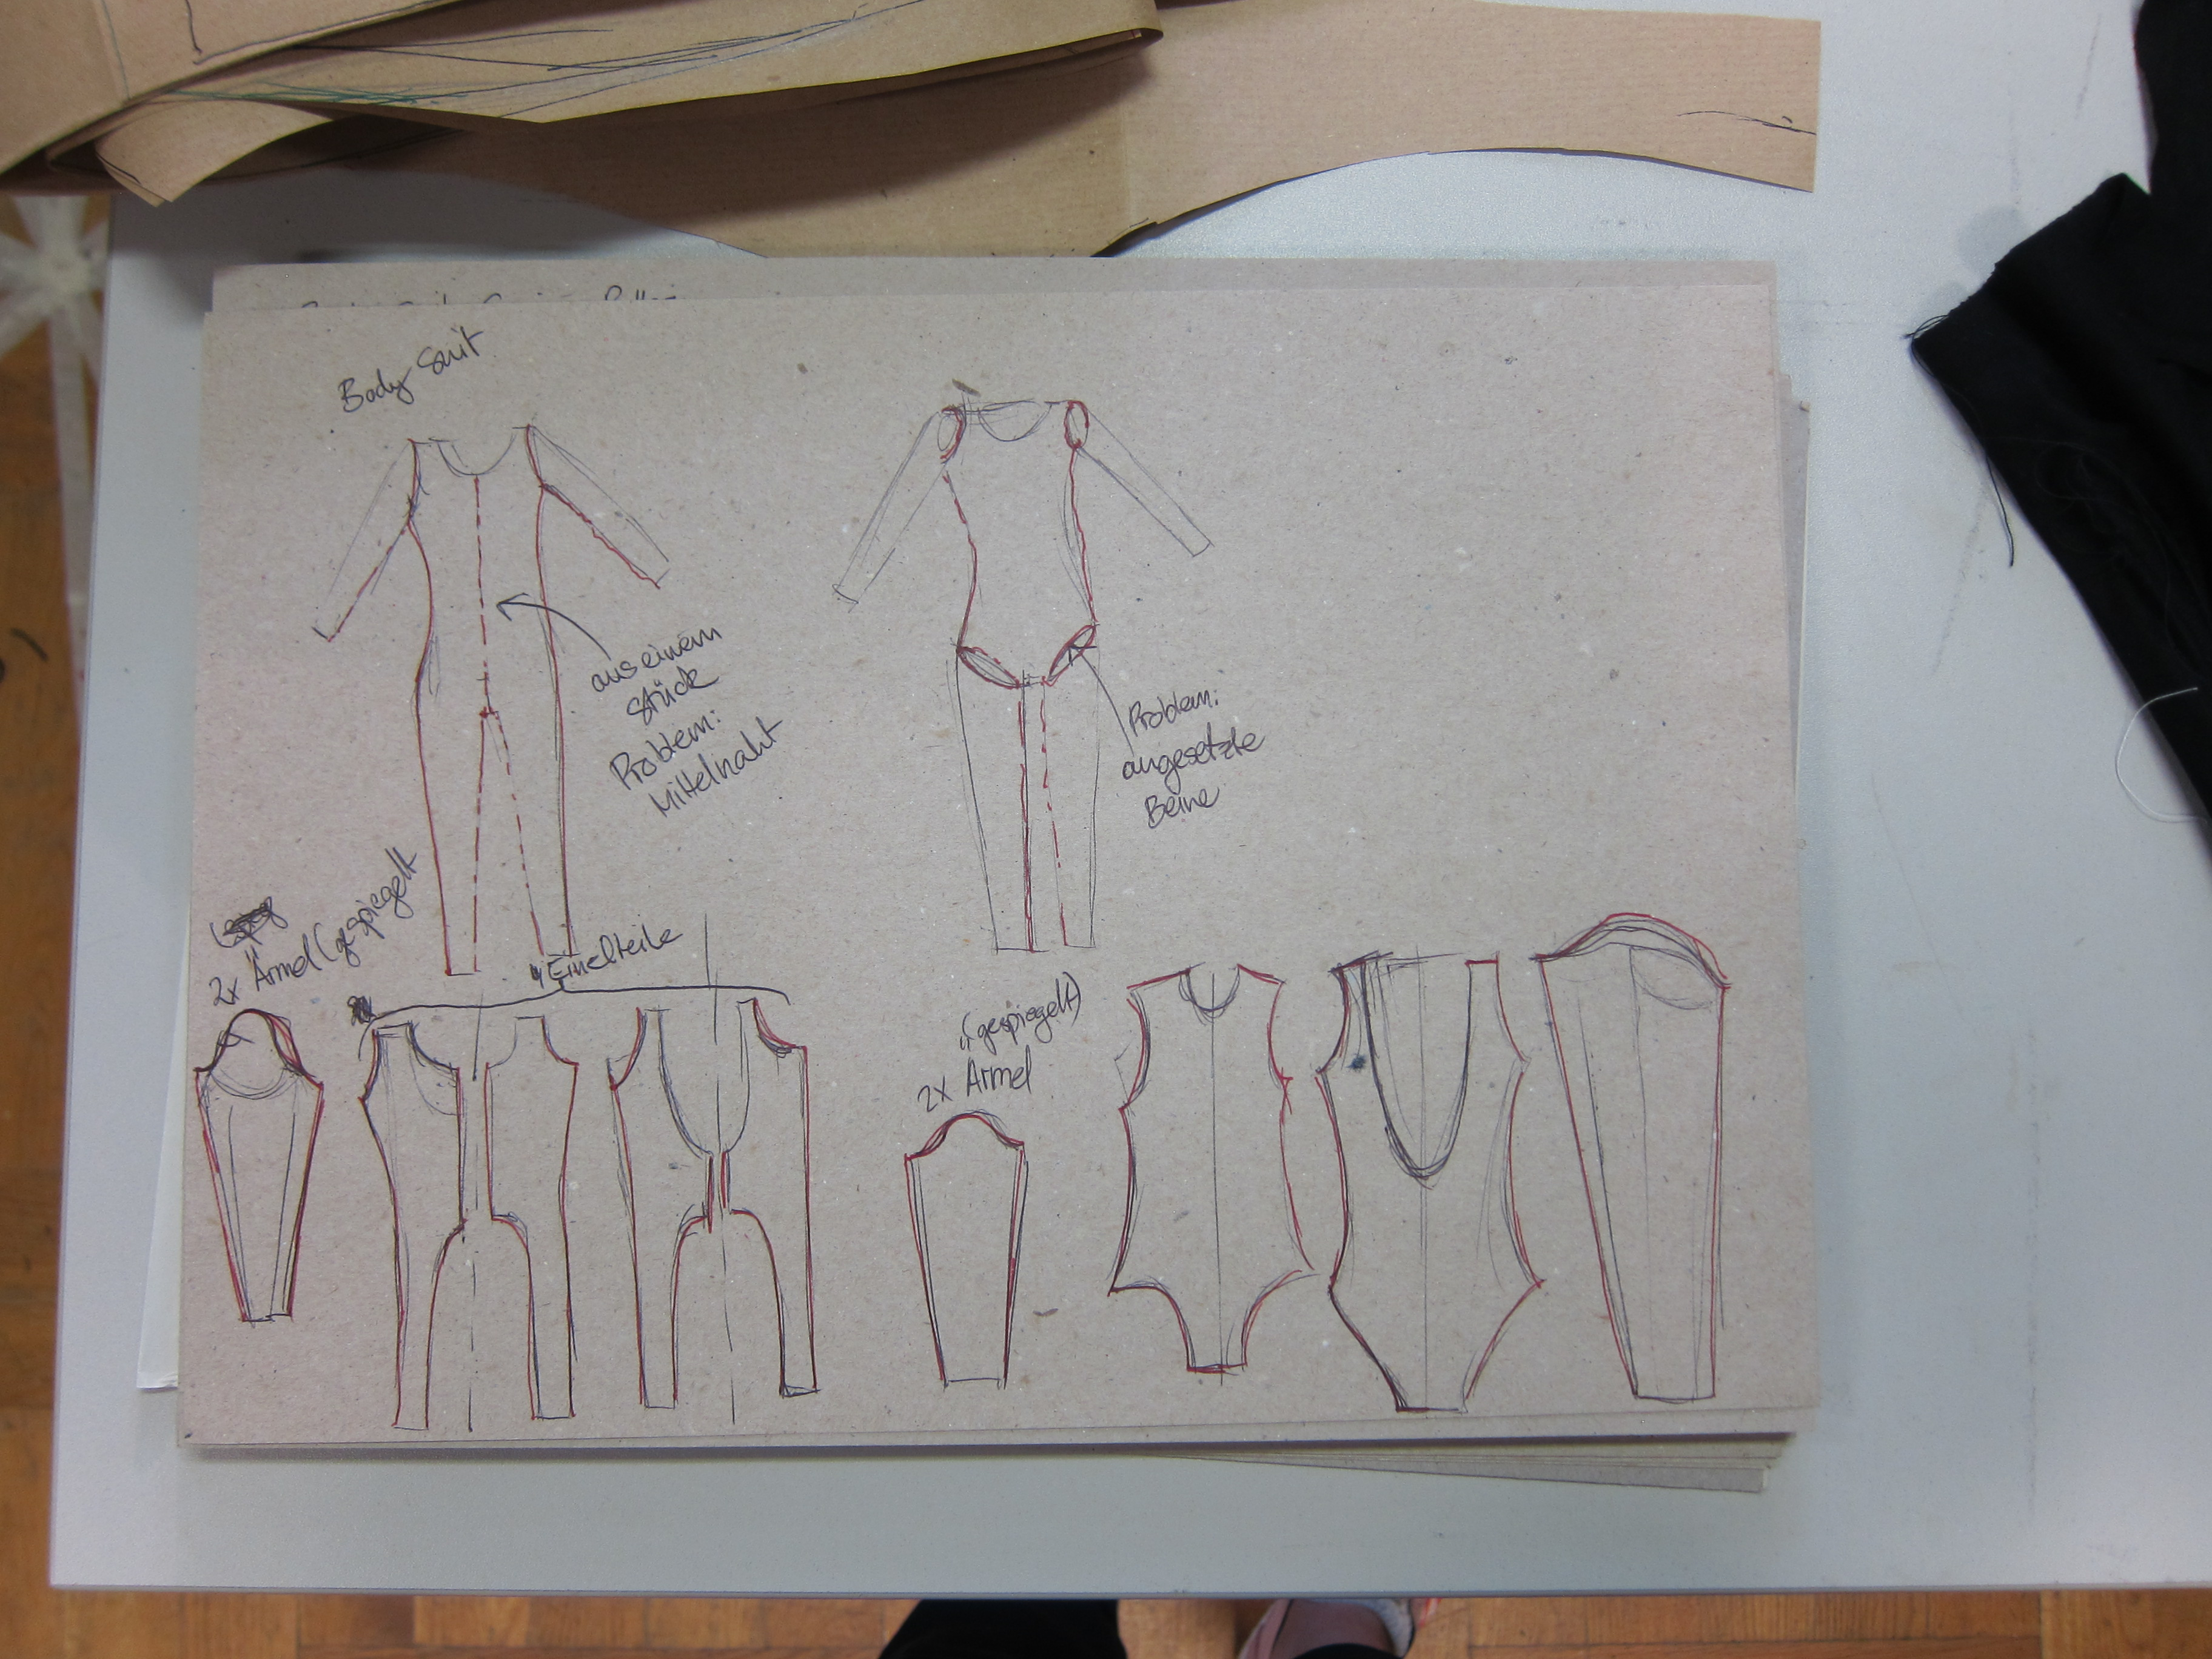 Making a sewing pattern for a full body suit costumes and sensors separate sewing pattern parts jeuxipadfo Image collections